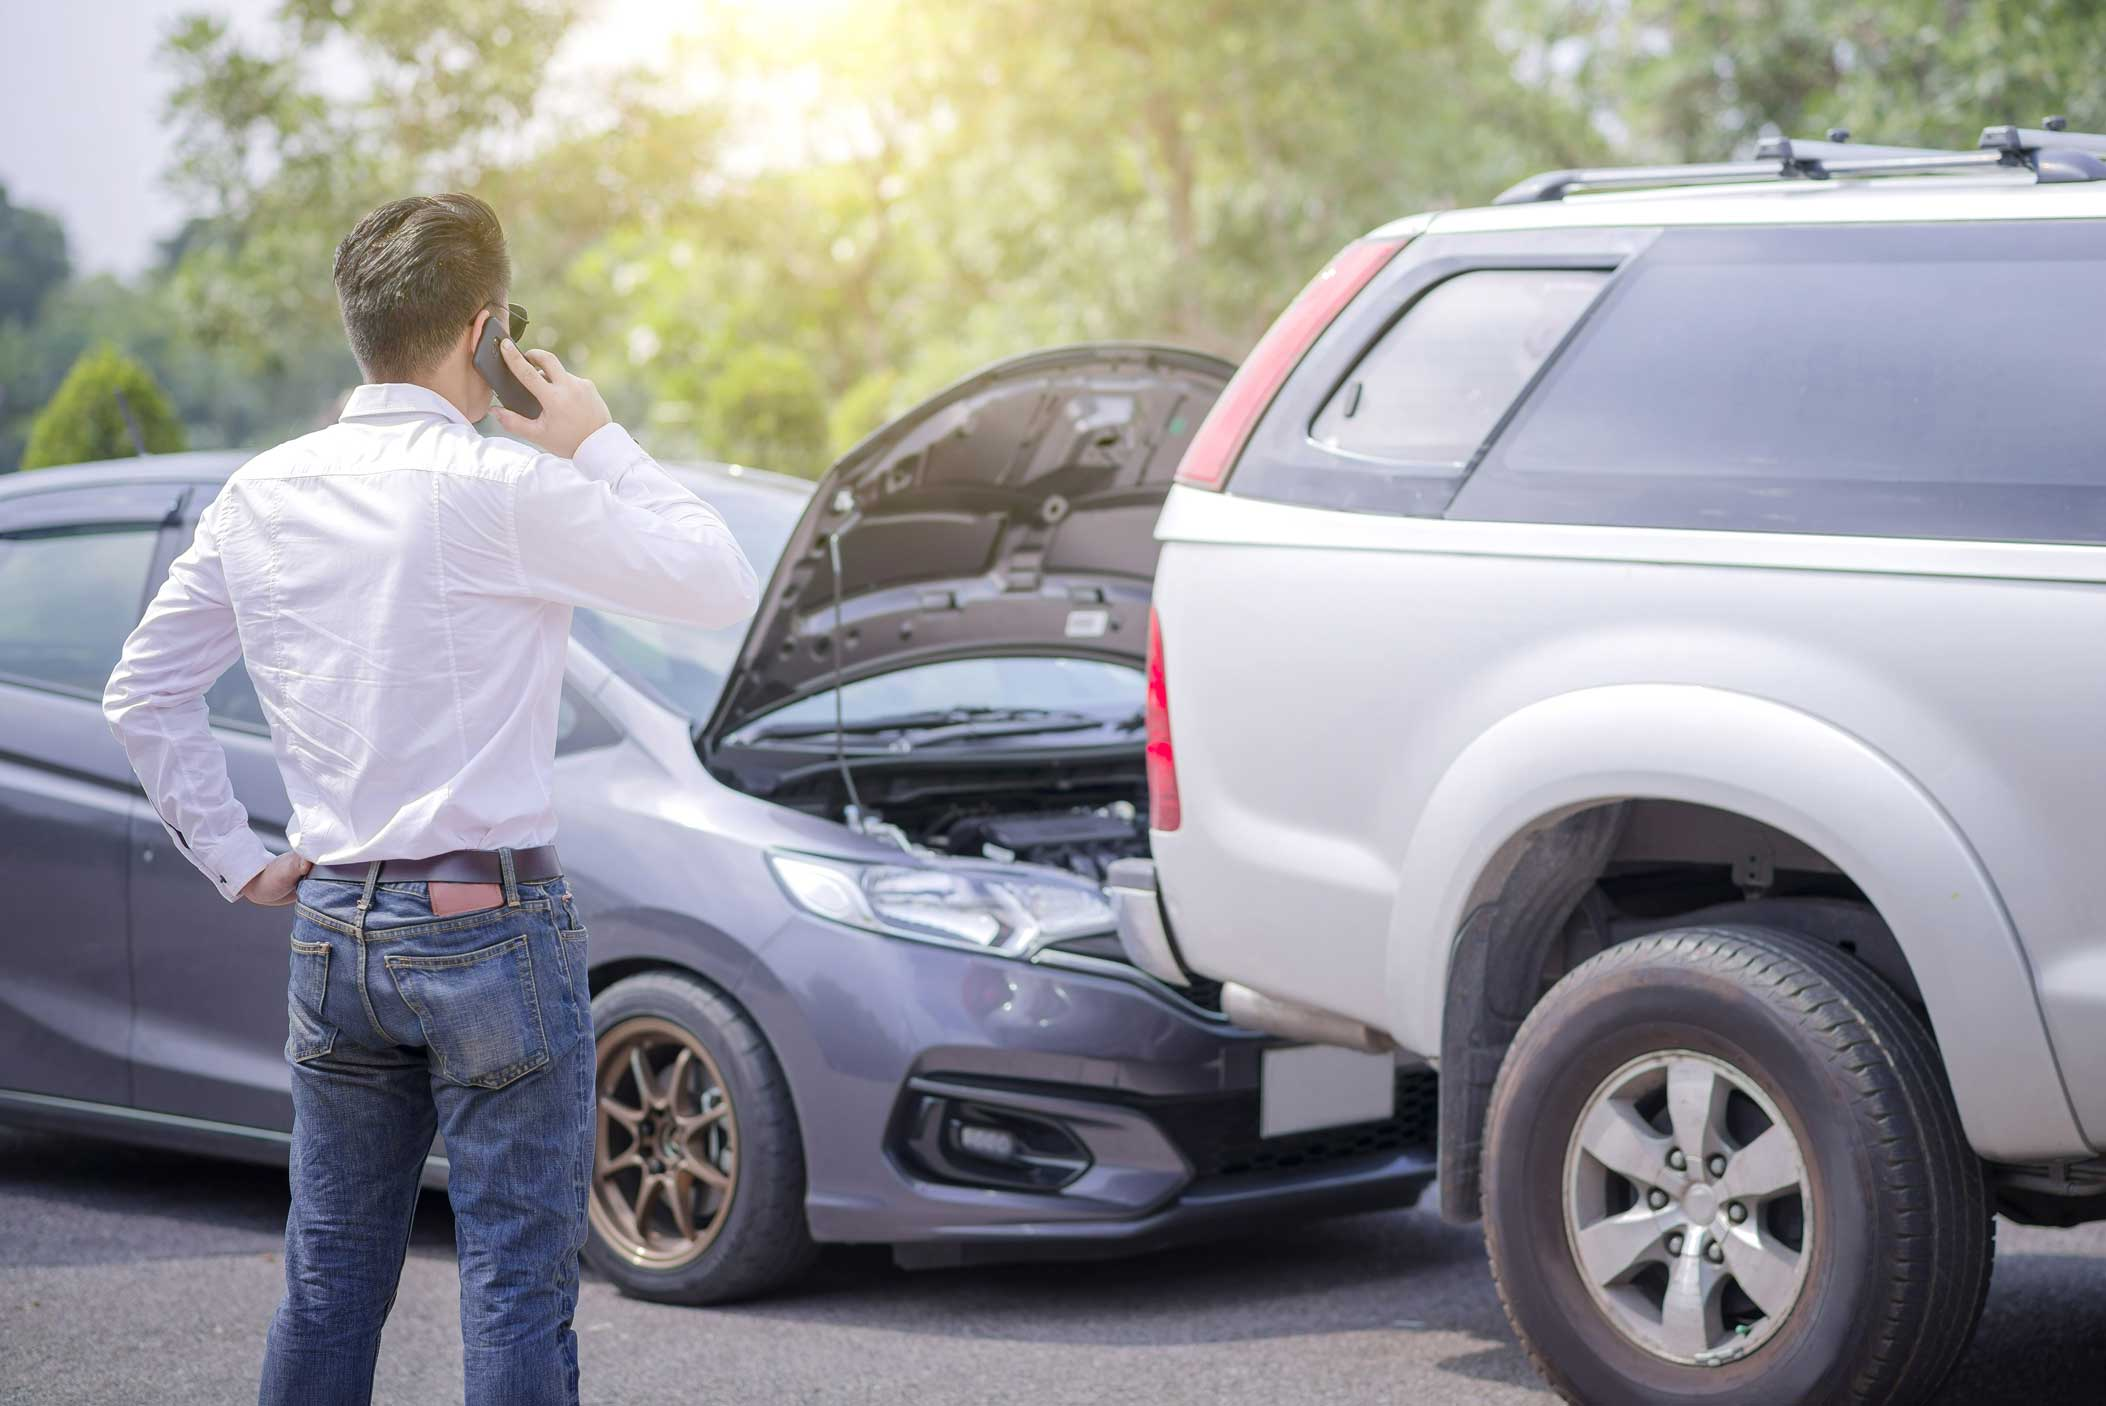 What to do in the event of a car accident for your car insurance